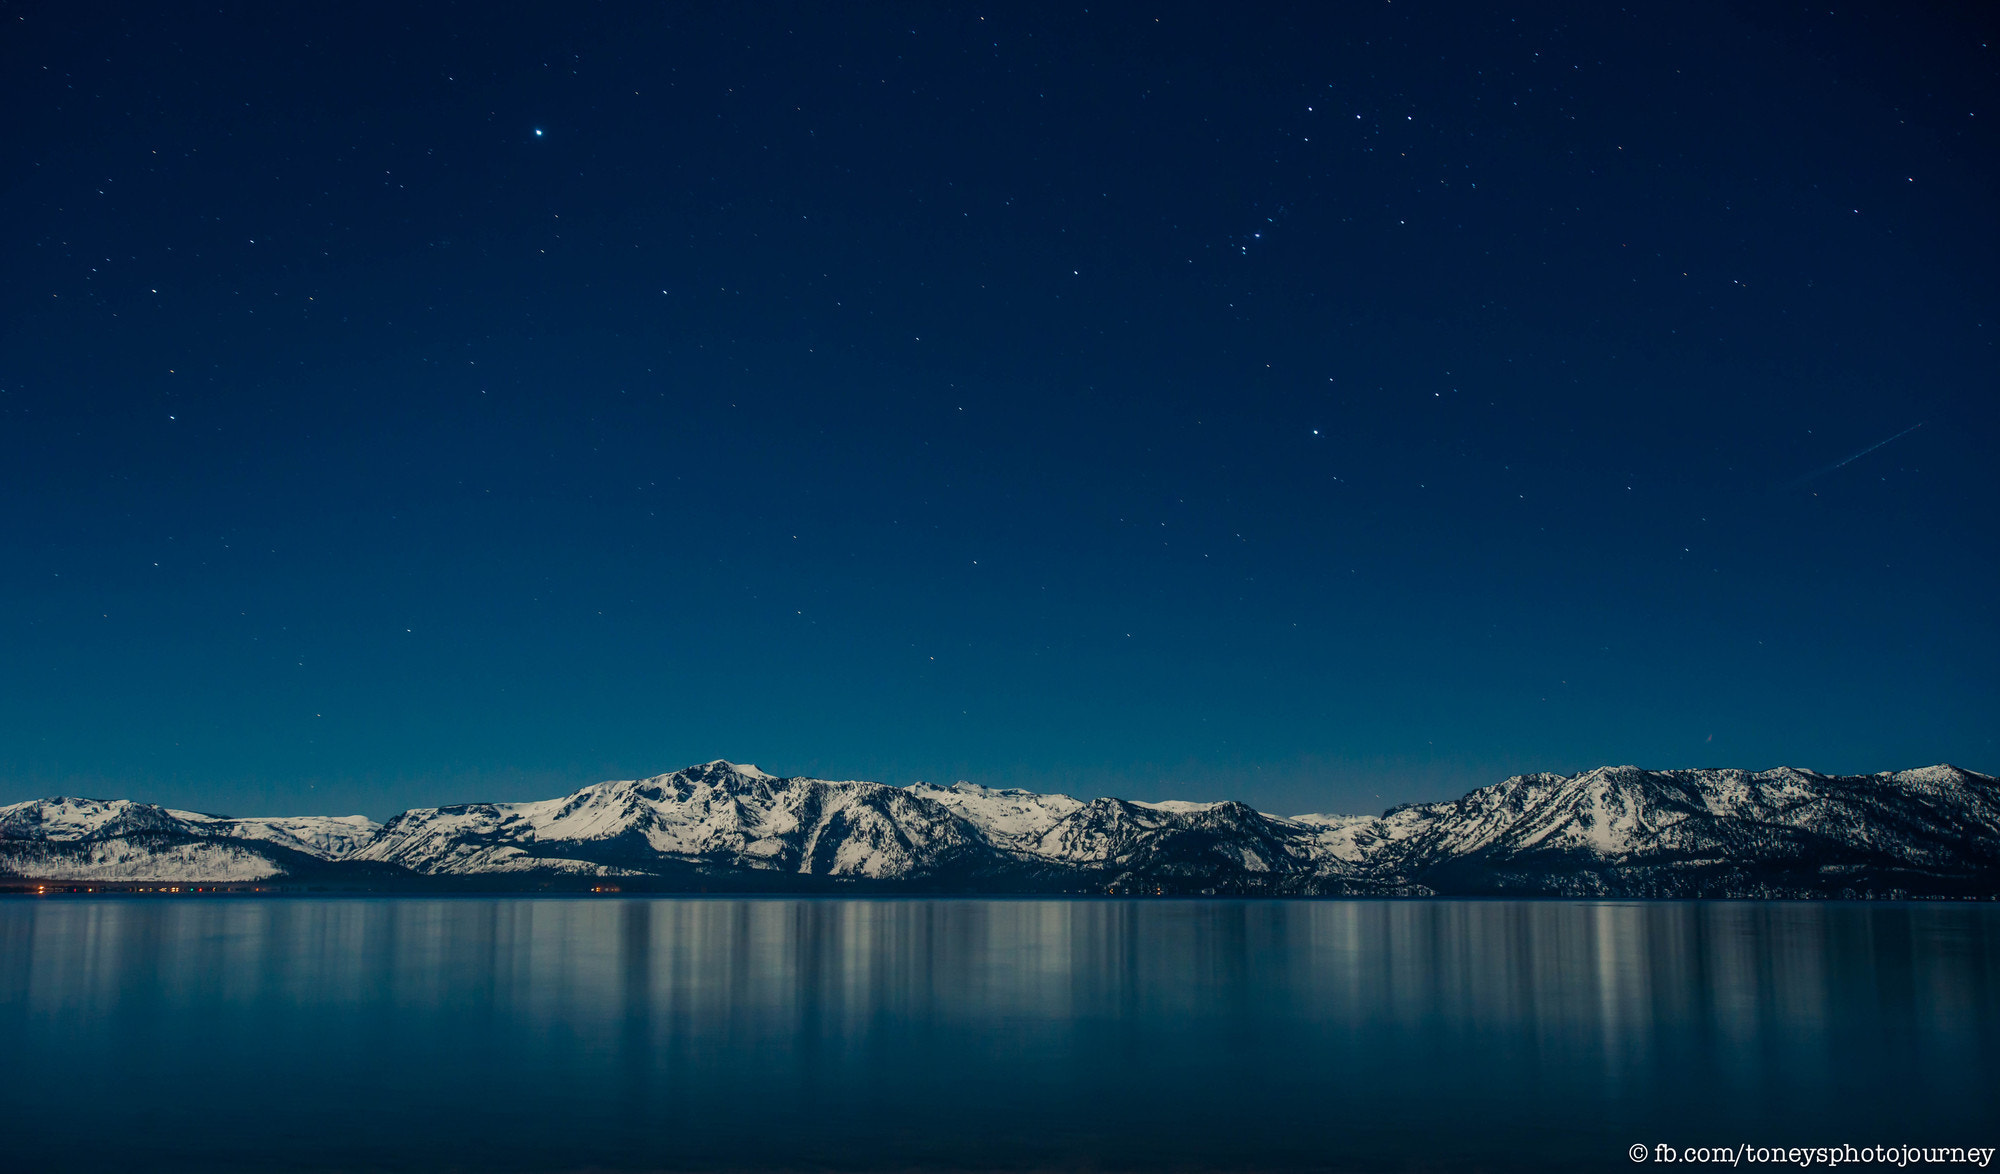 Photograph Lake Tahoe by Toney's Photo Journey on 500px